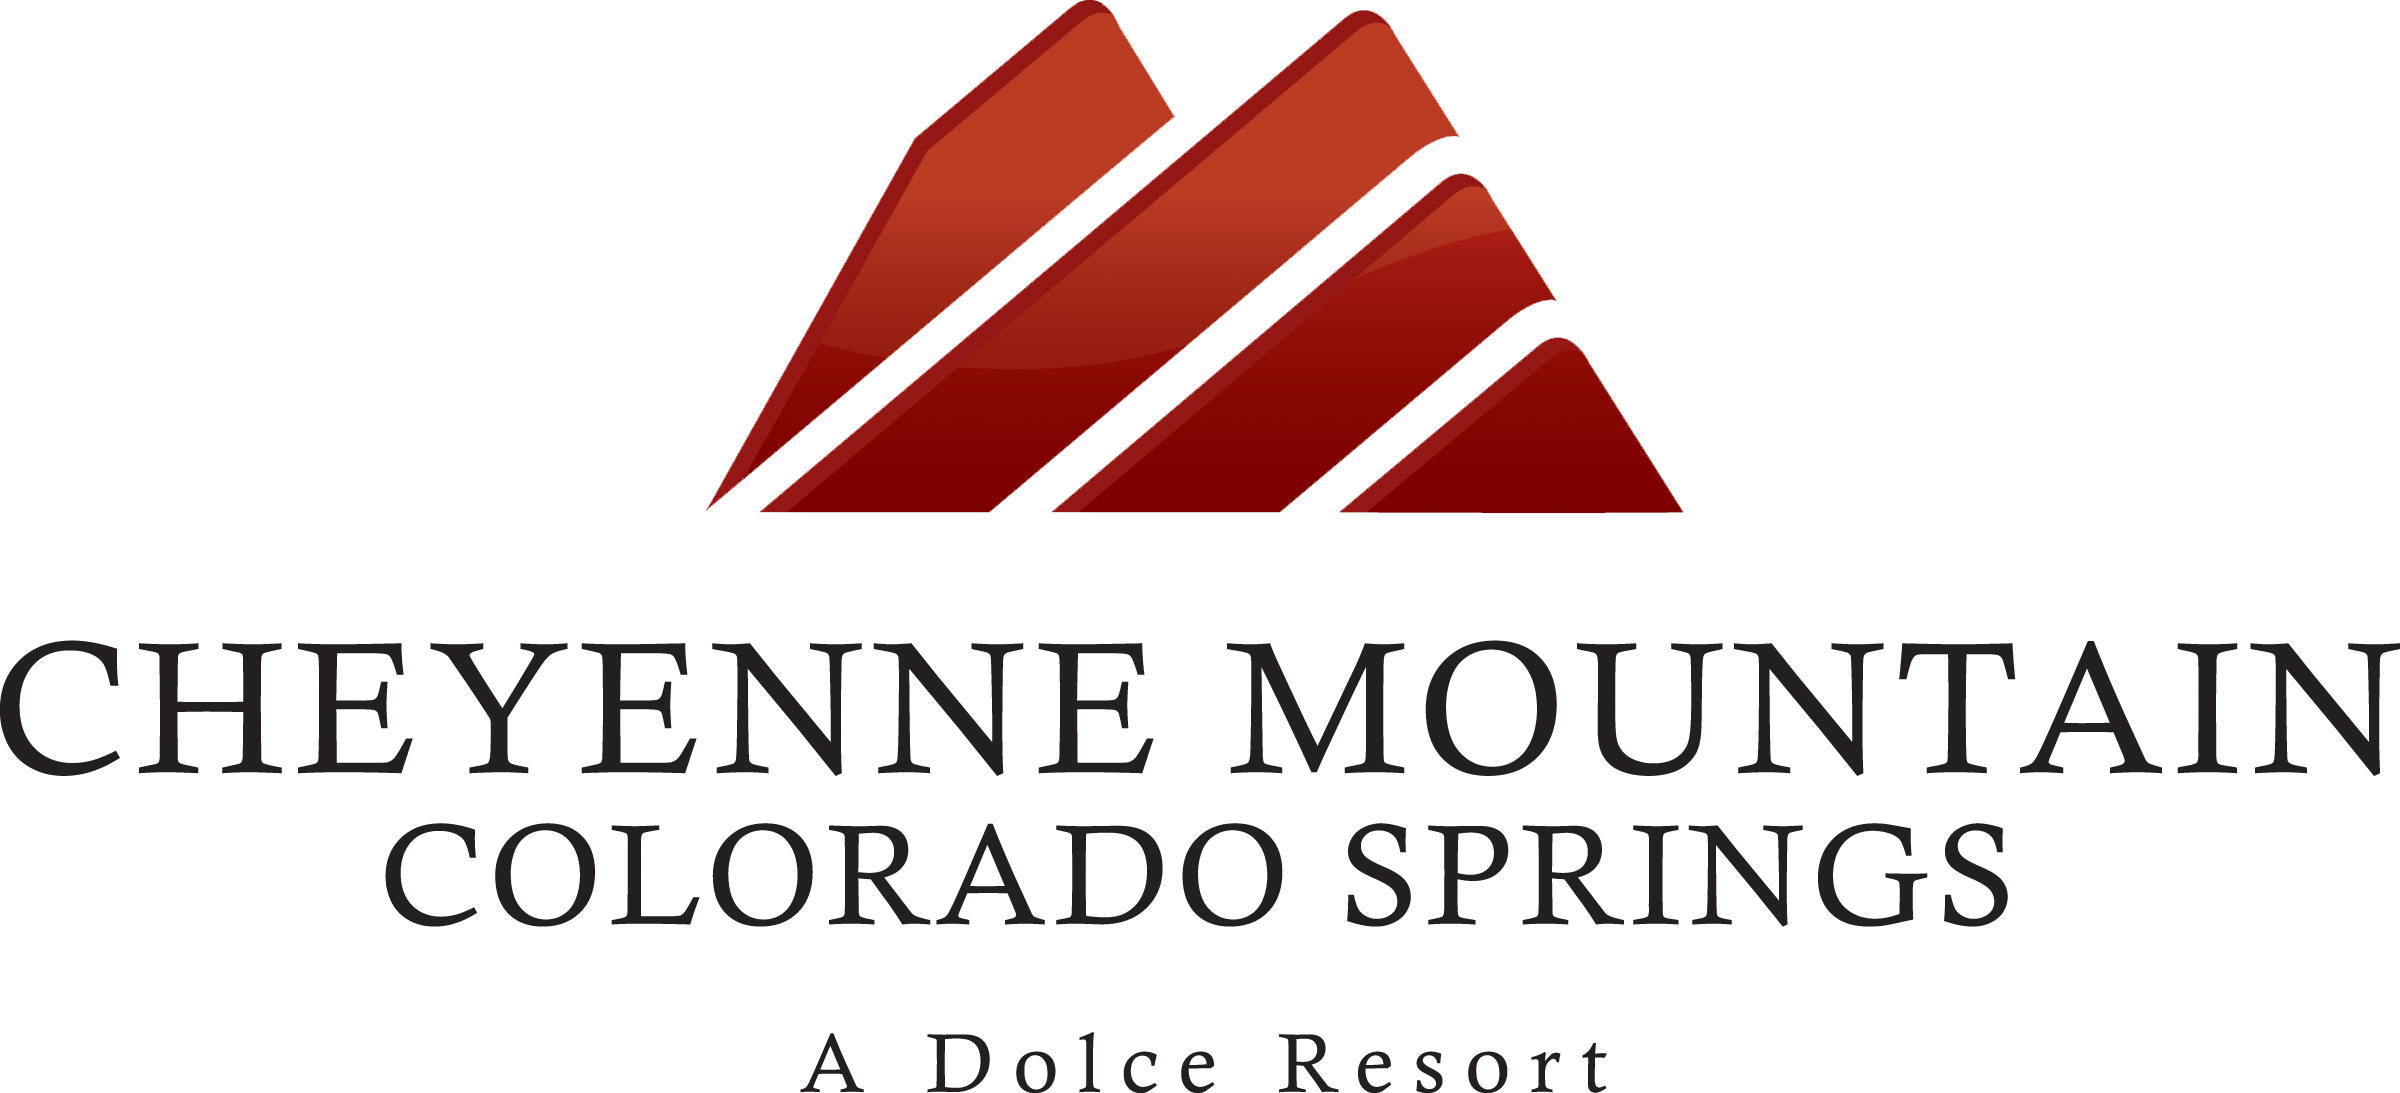 Cheyenne Mountain Resort logo